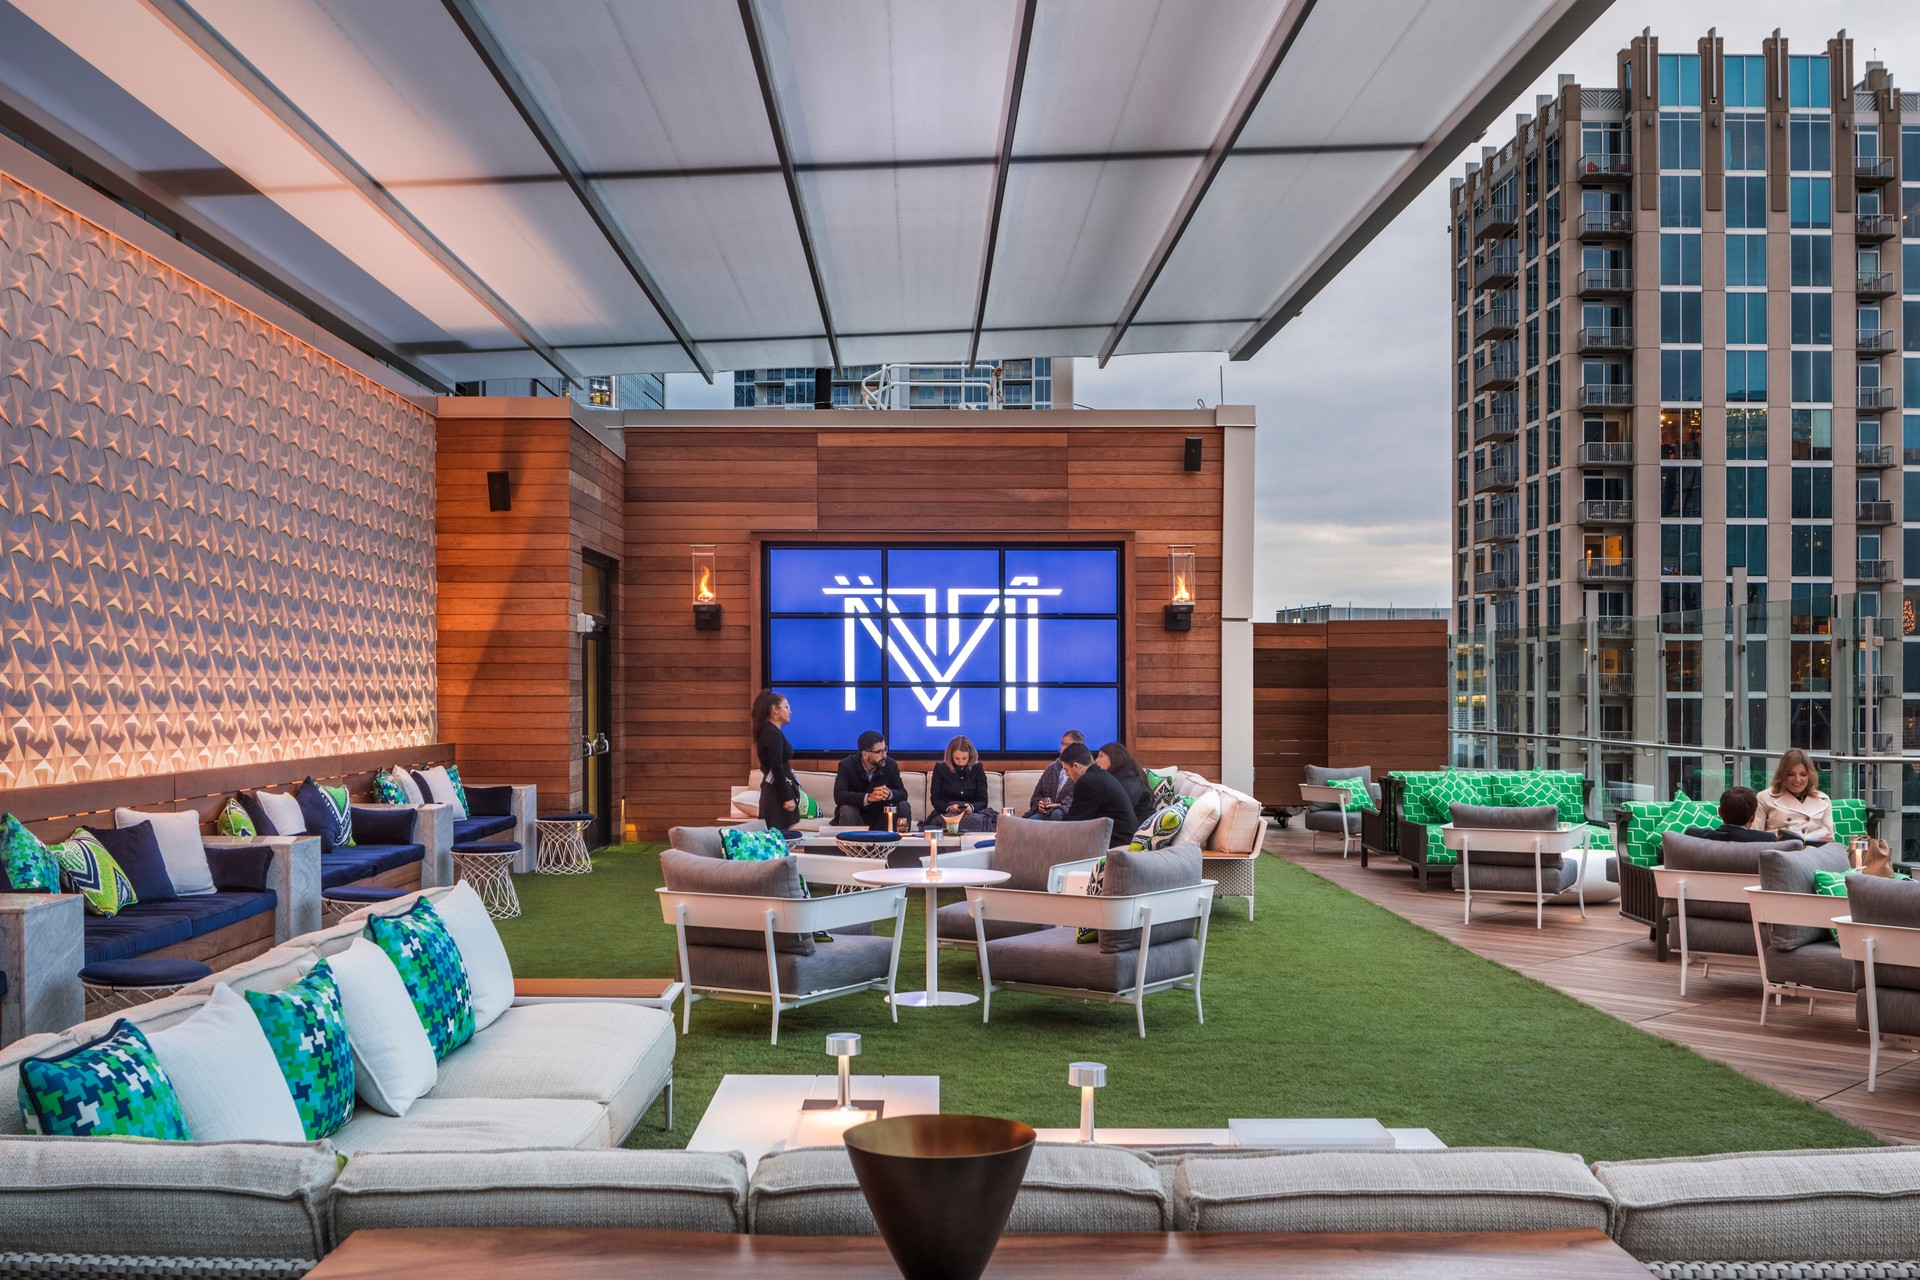 The foundation of the Kimpton Tryon Park Hotel rooftop renovation was created using Bison adjustable HP Series Pedestals and Fixed Height Pedestals supporting Bison 4x2 and 2x2 smooth Ipê Wood Tiles for the deck surface.